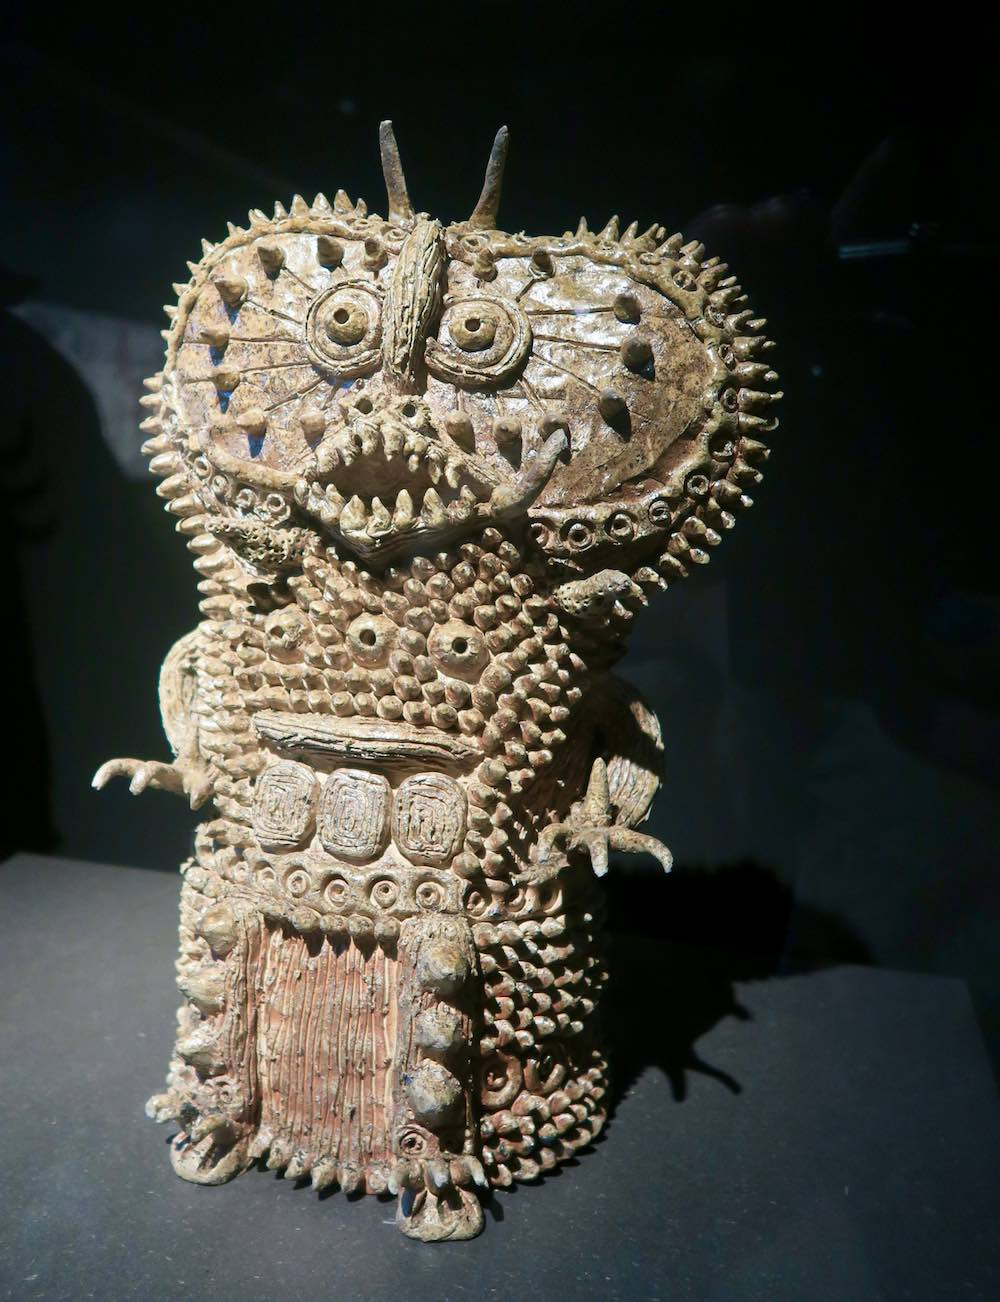 Impressive sculpture by Shinichi Sawada at outsider art museum amsterdam |curlytraveller.com